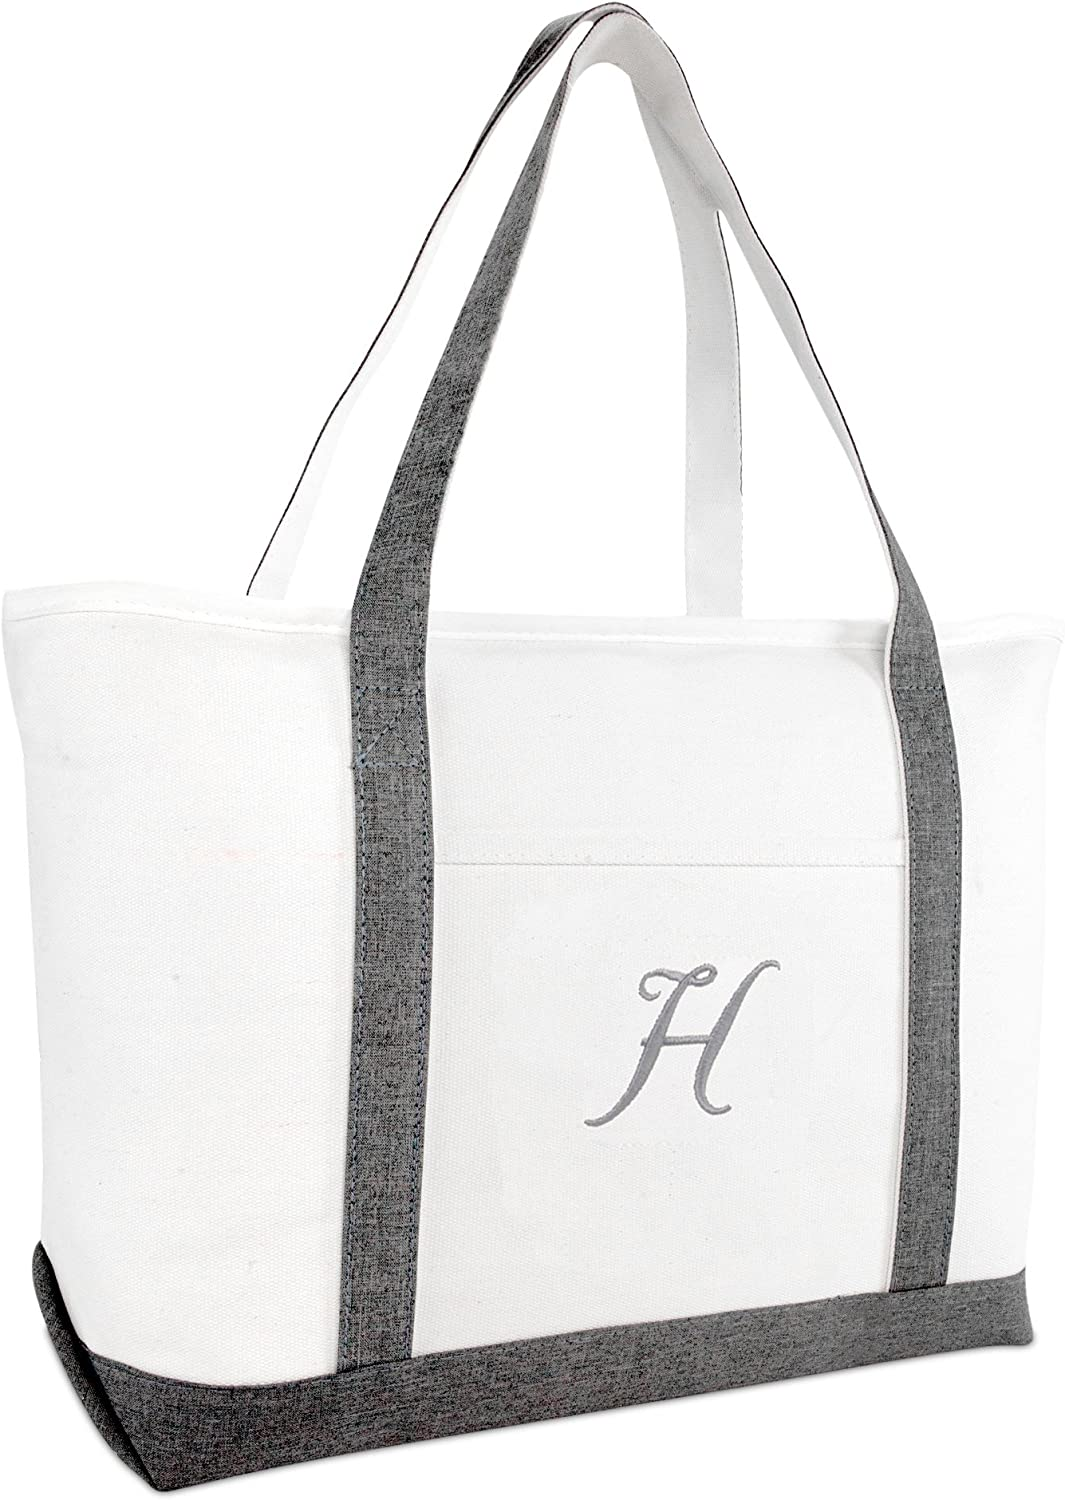 DALIX Gray Beach Tote Bag Gifts Shoulder Bags Women Personalized All stores Max 49% OFF are sold